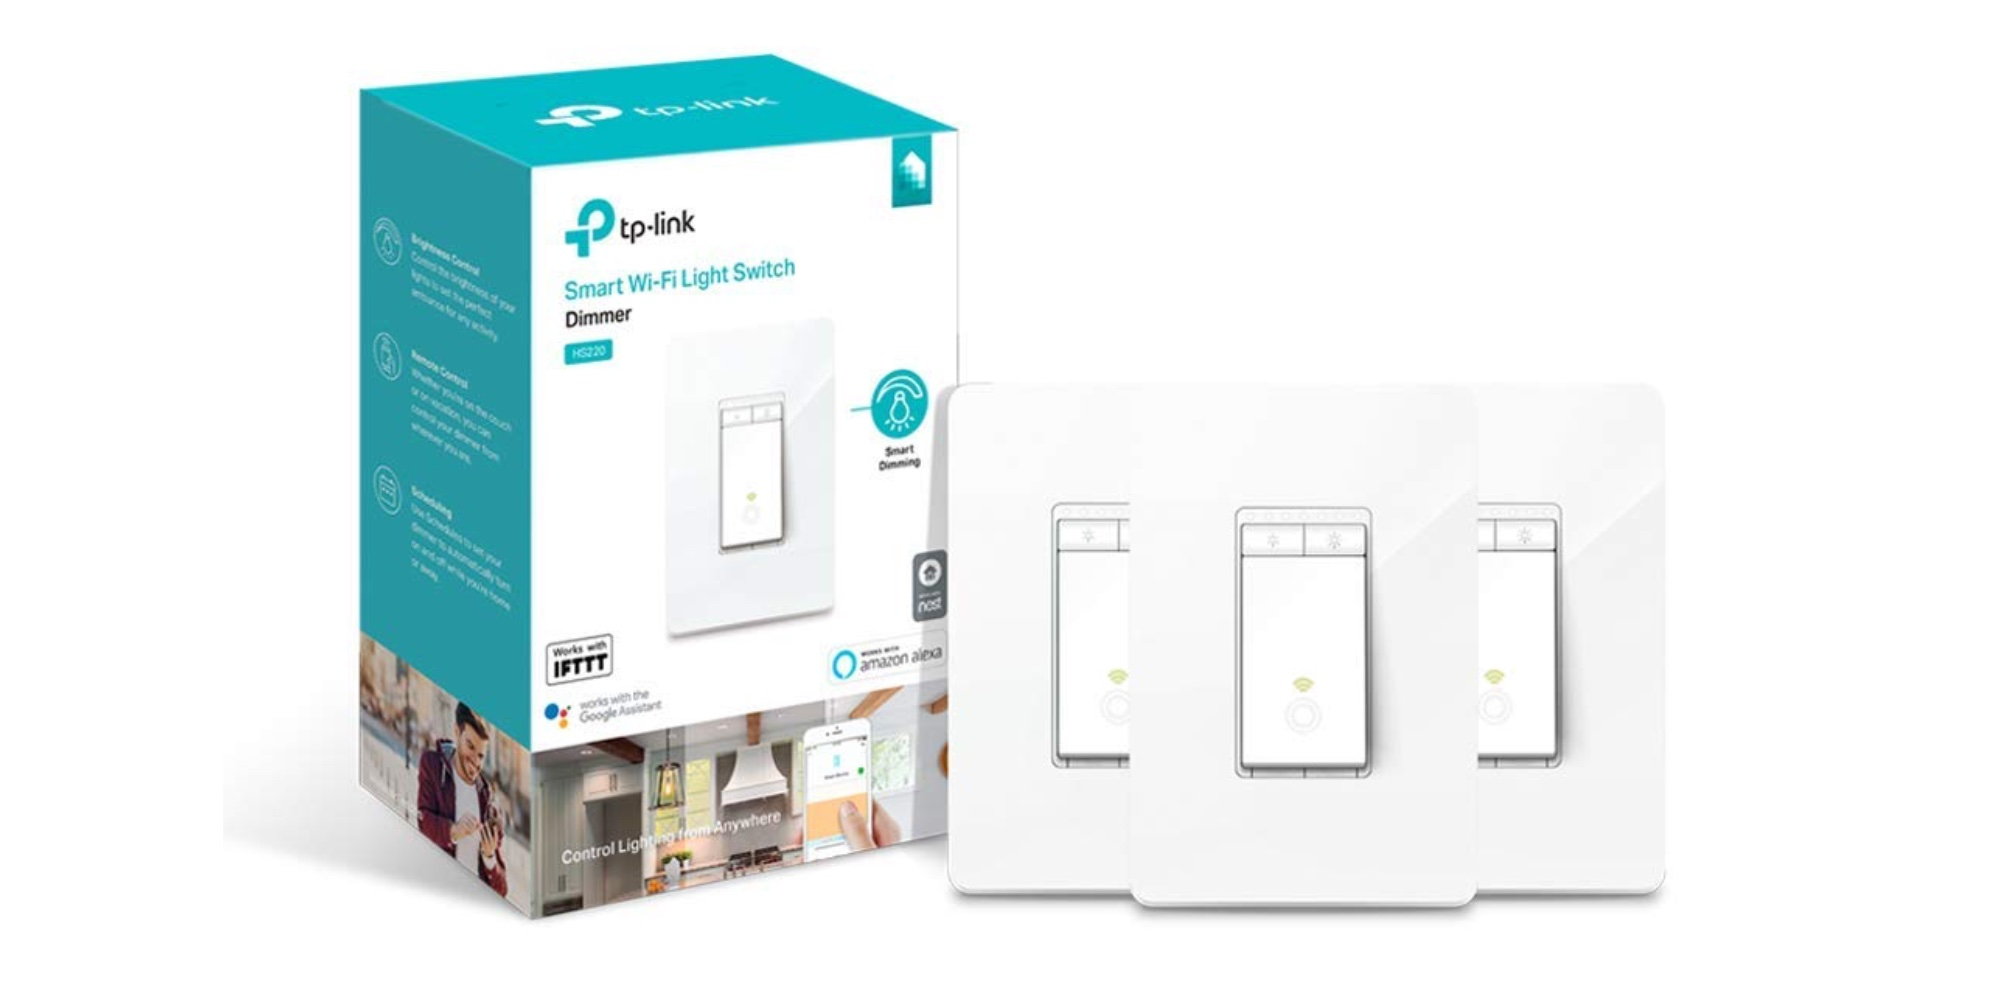 Outfit your smart home with three Alexa-enabled TP-Link Light Switches for $100 (Save $20)